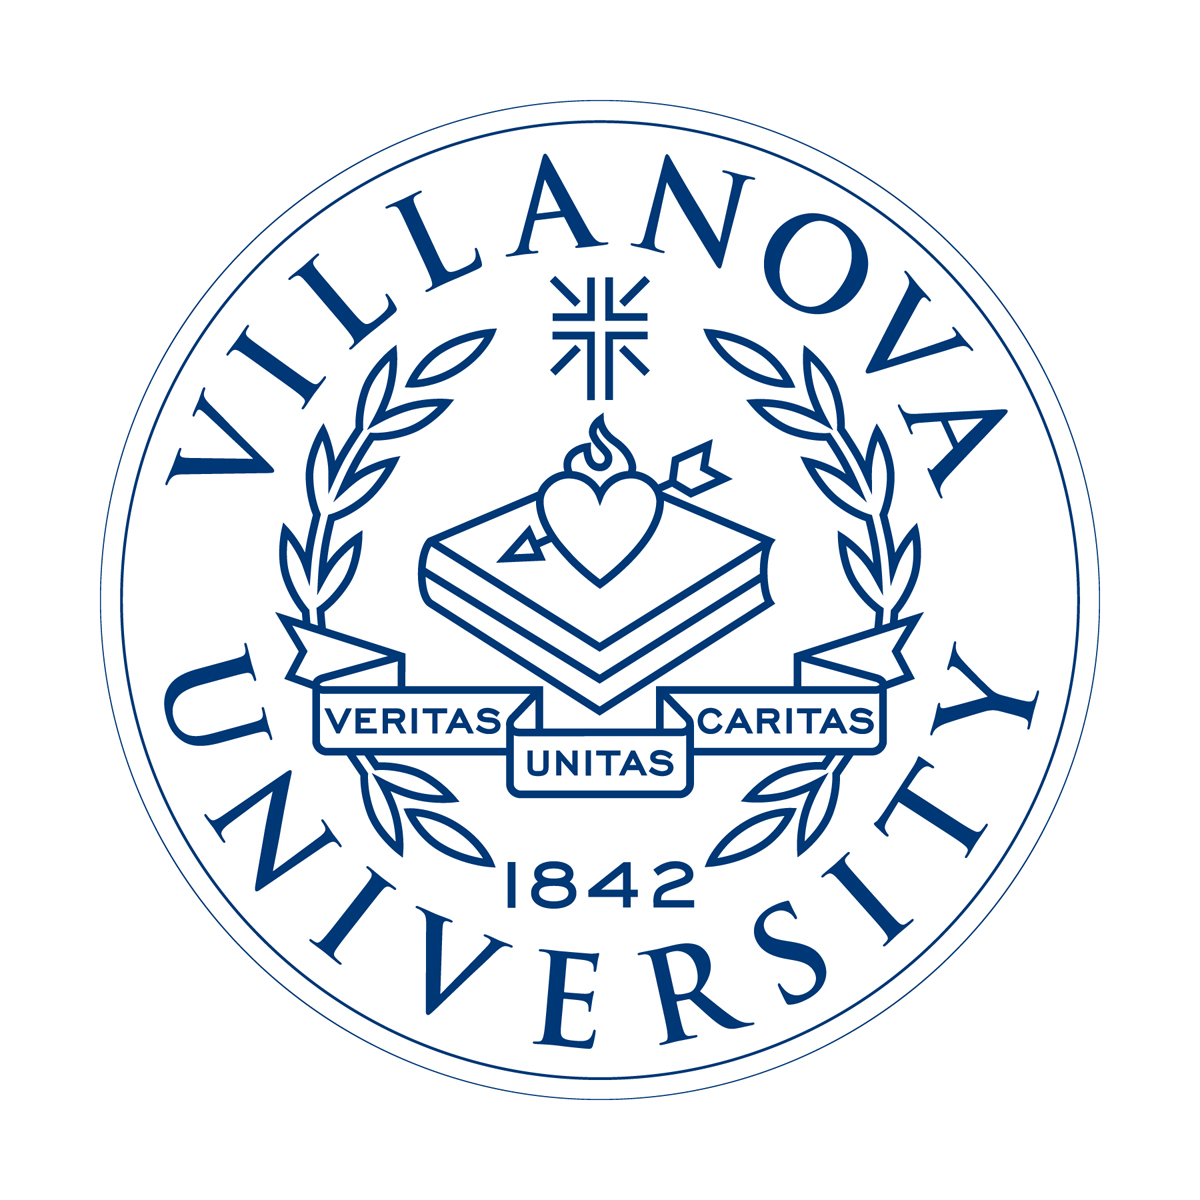 Villanova University announces the election of two new members to its Board of Trustees.